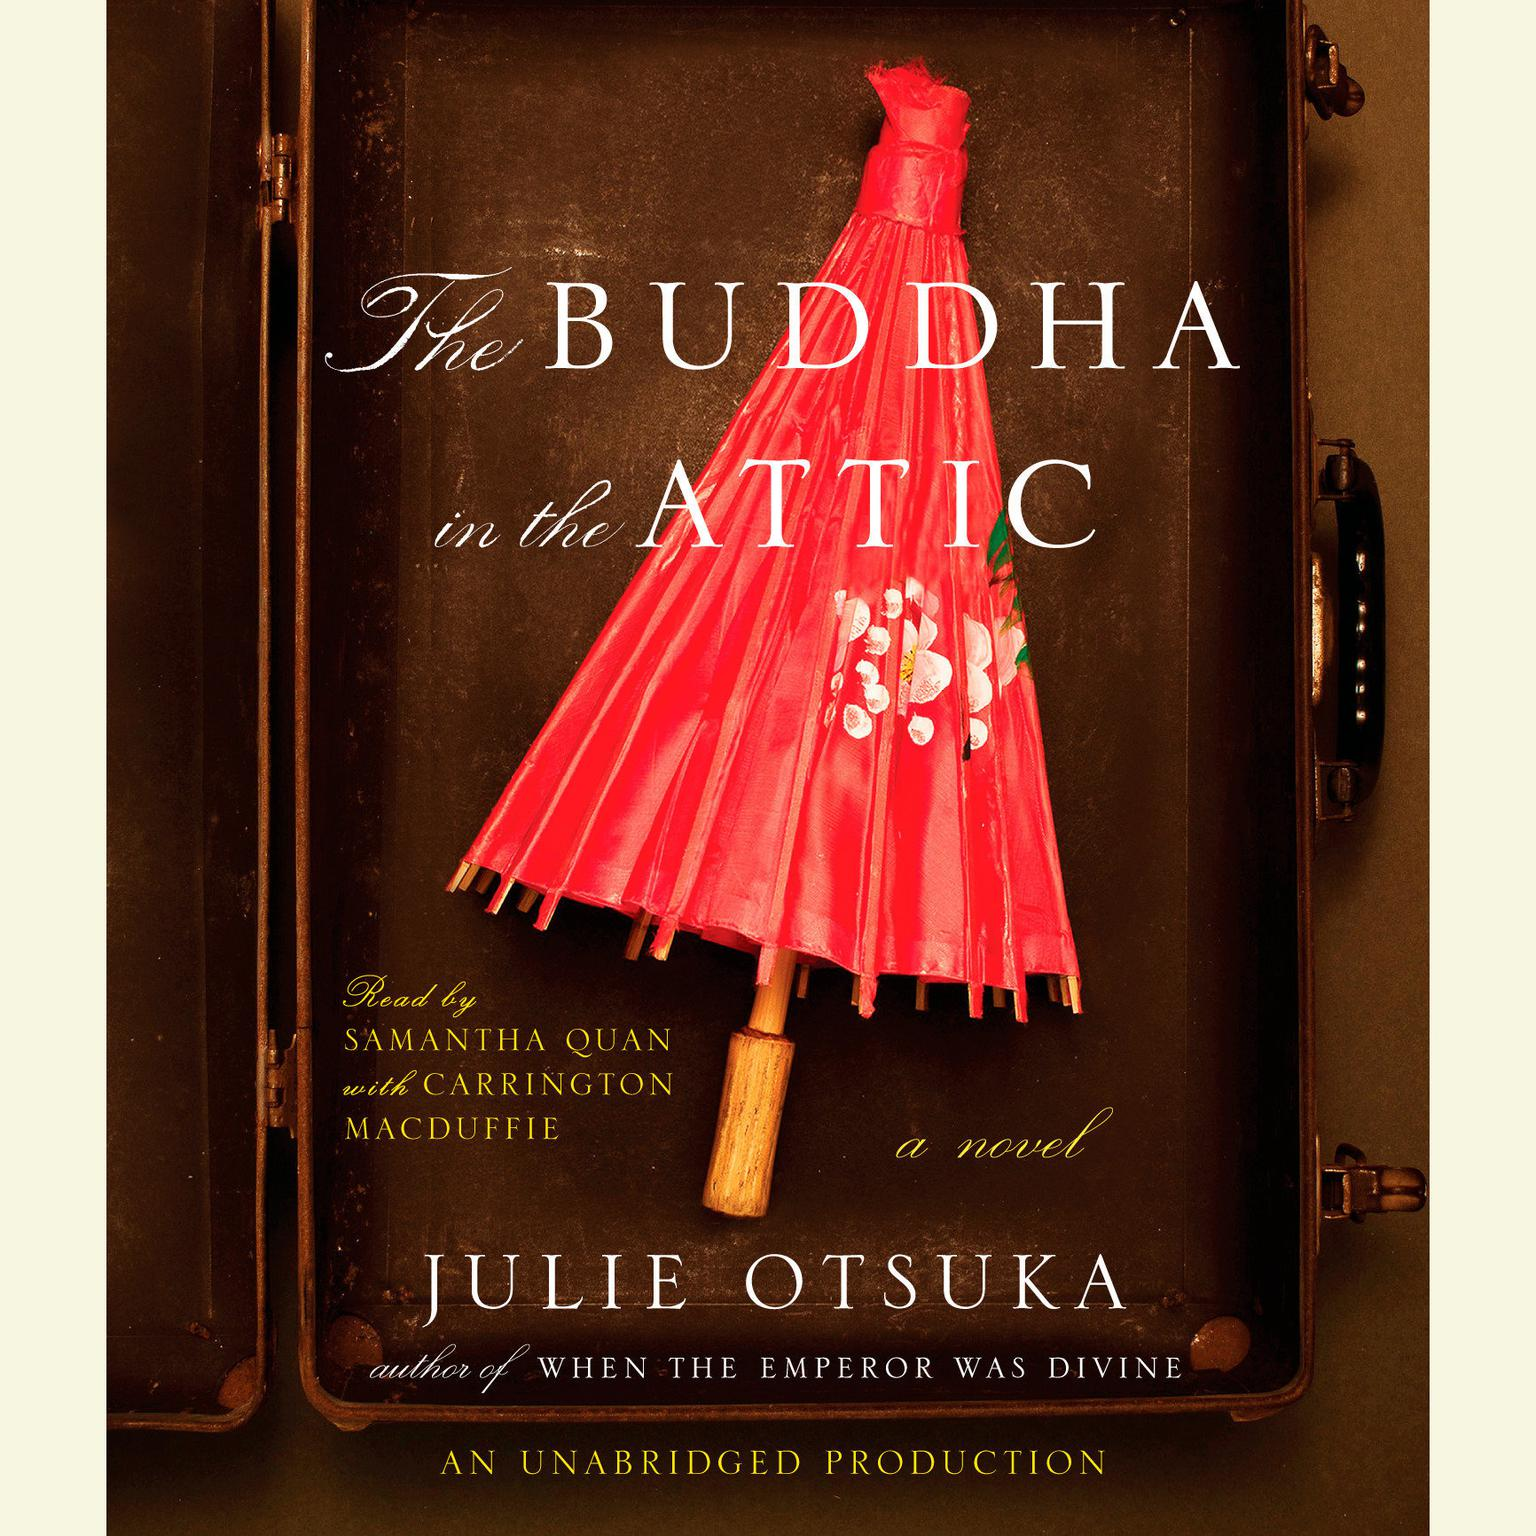 buddha in the attic Find helpful customer reviews and review ratings for the buddha in the attic at amazoncom read honest and unbiased product reviews from our users.